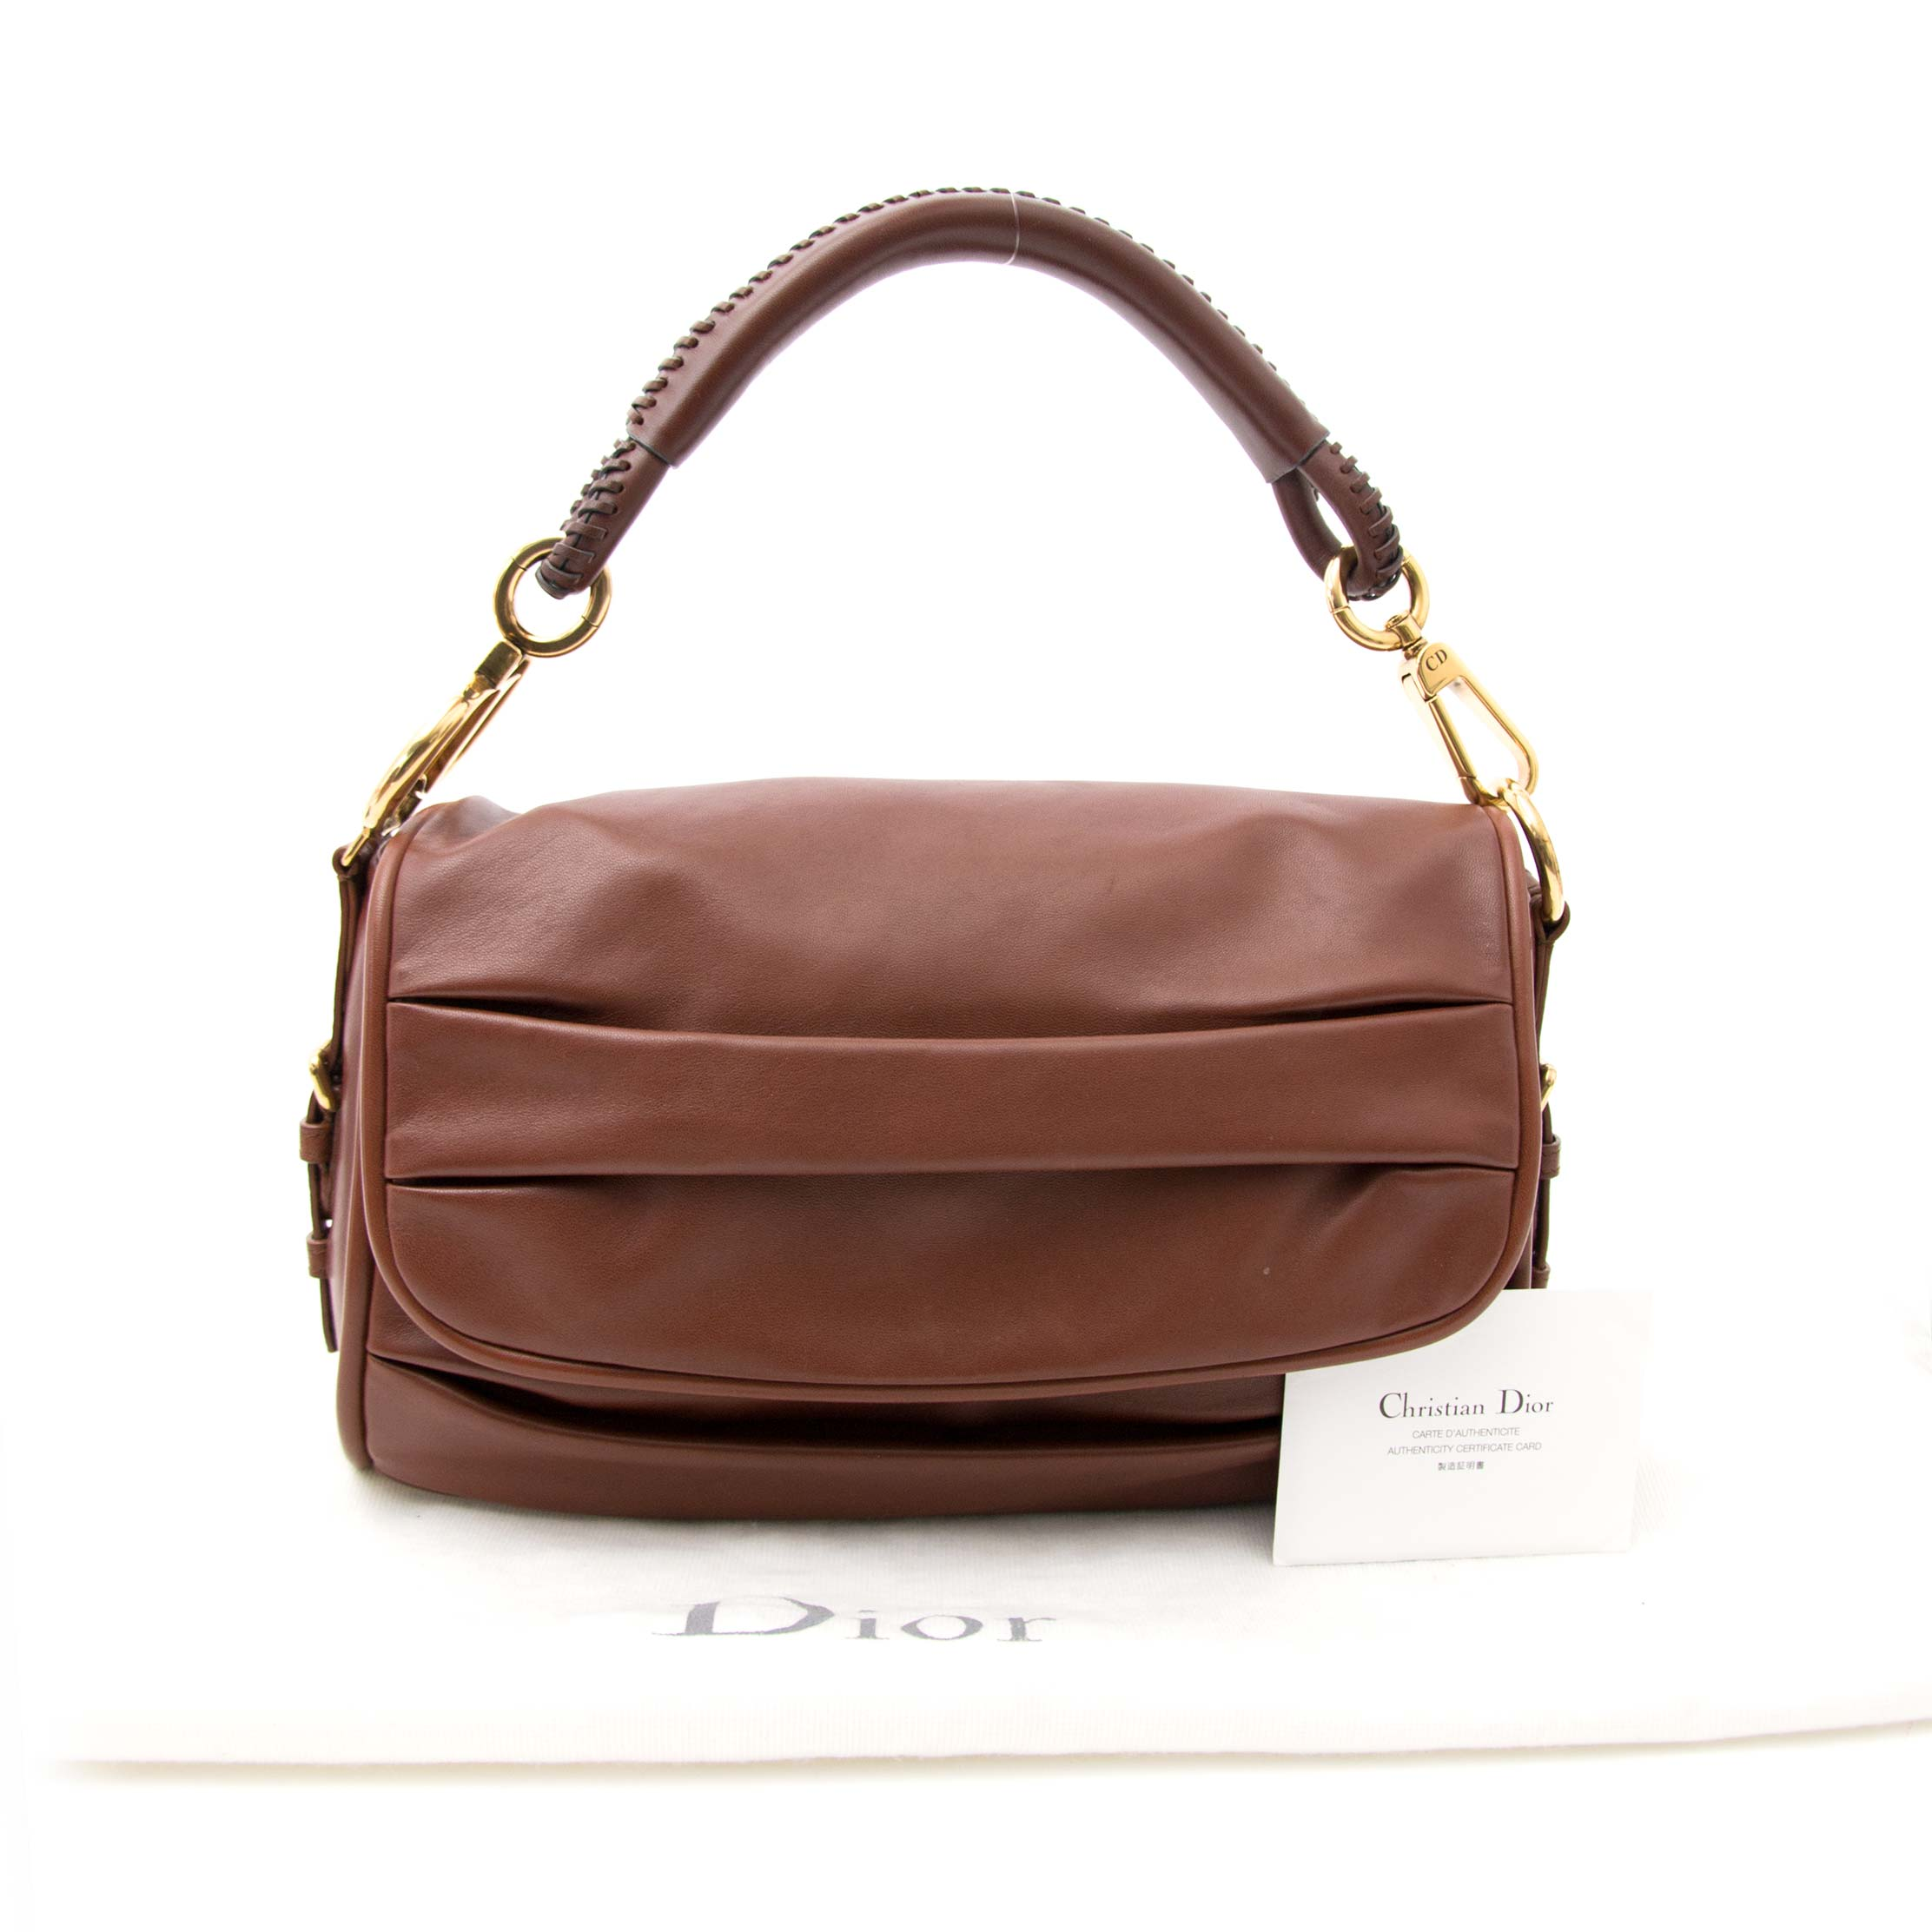 dior pleated brown leather bag now online at labellov.com for the best price